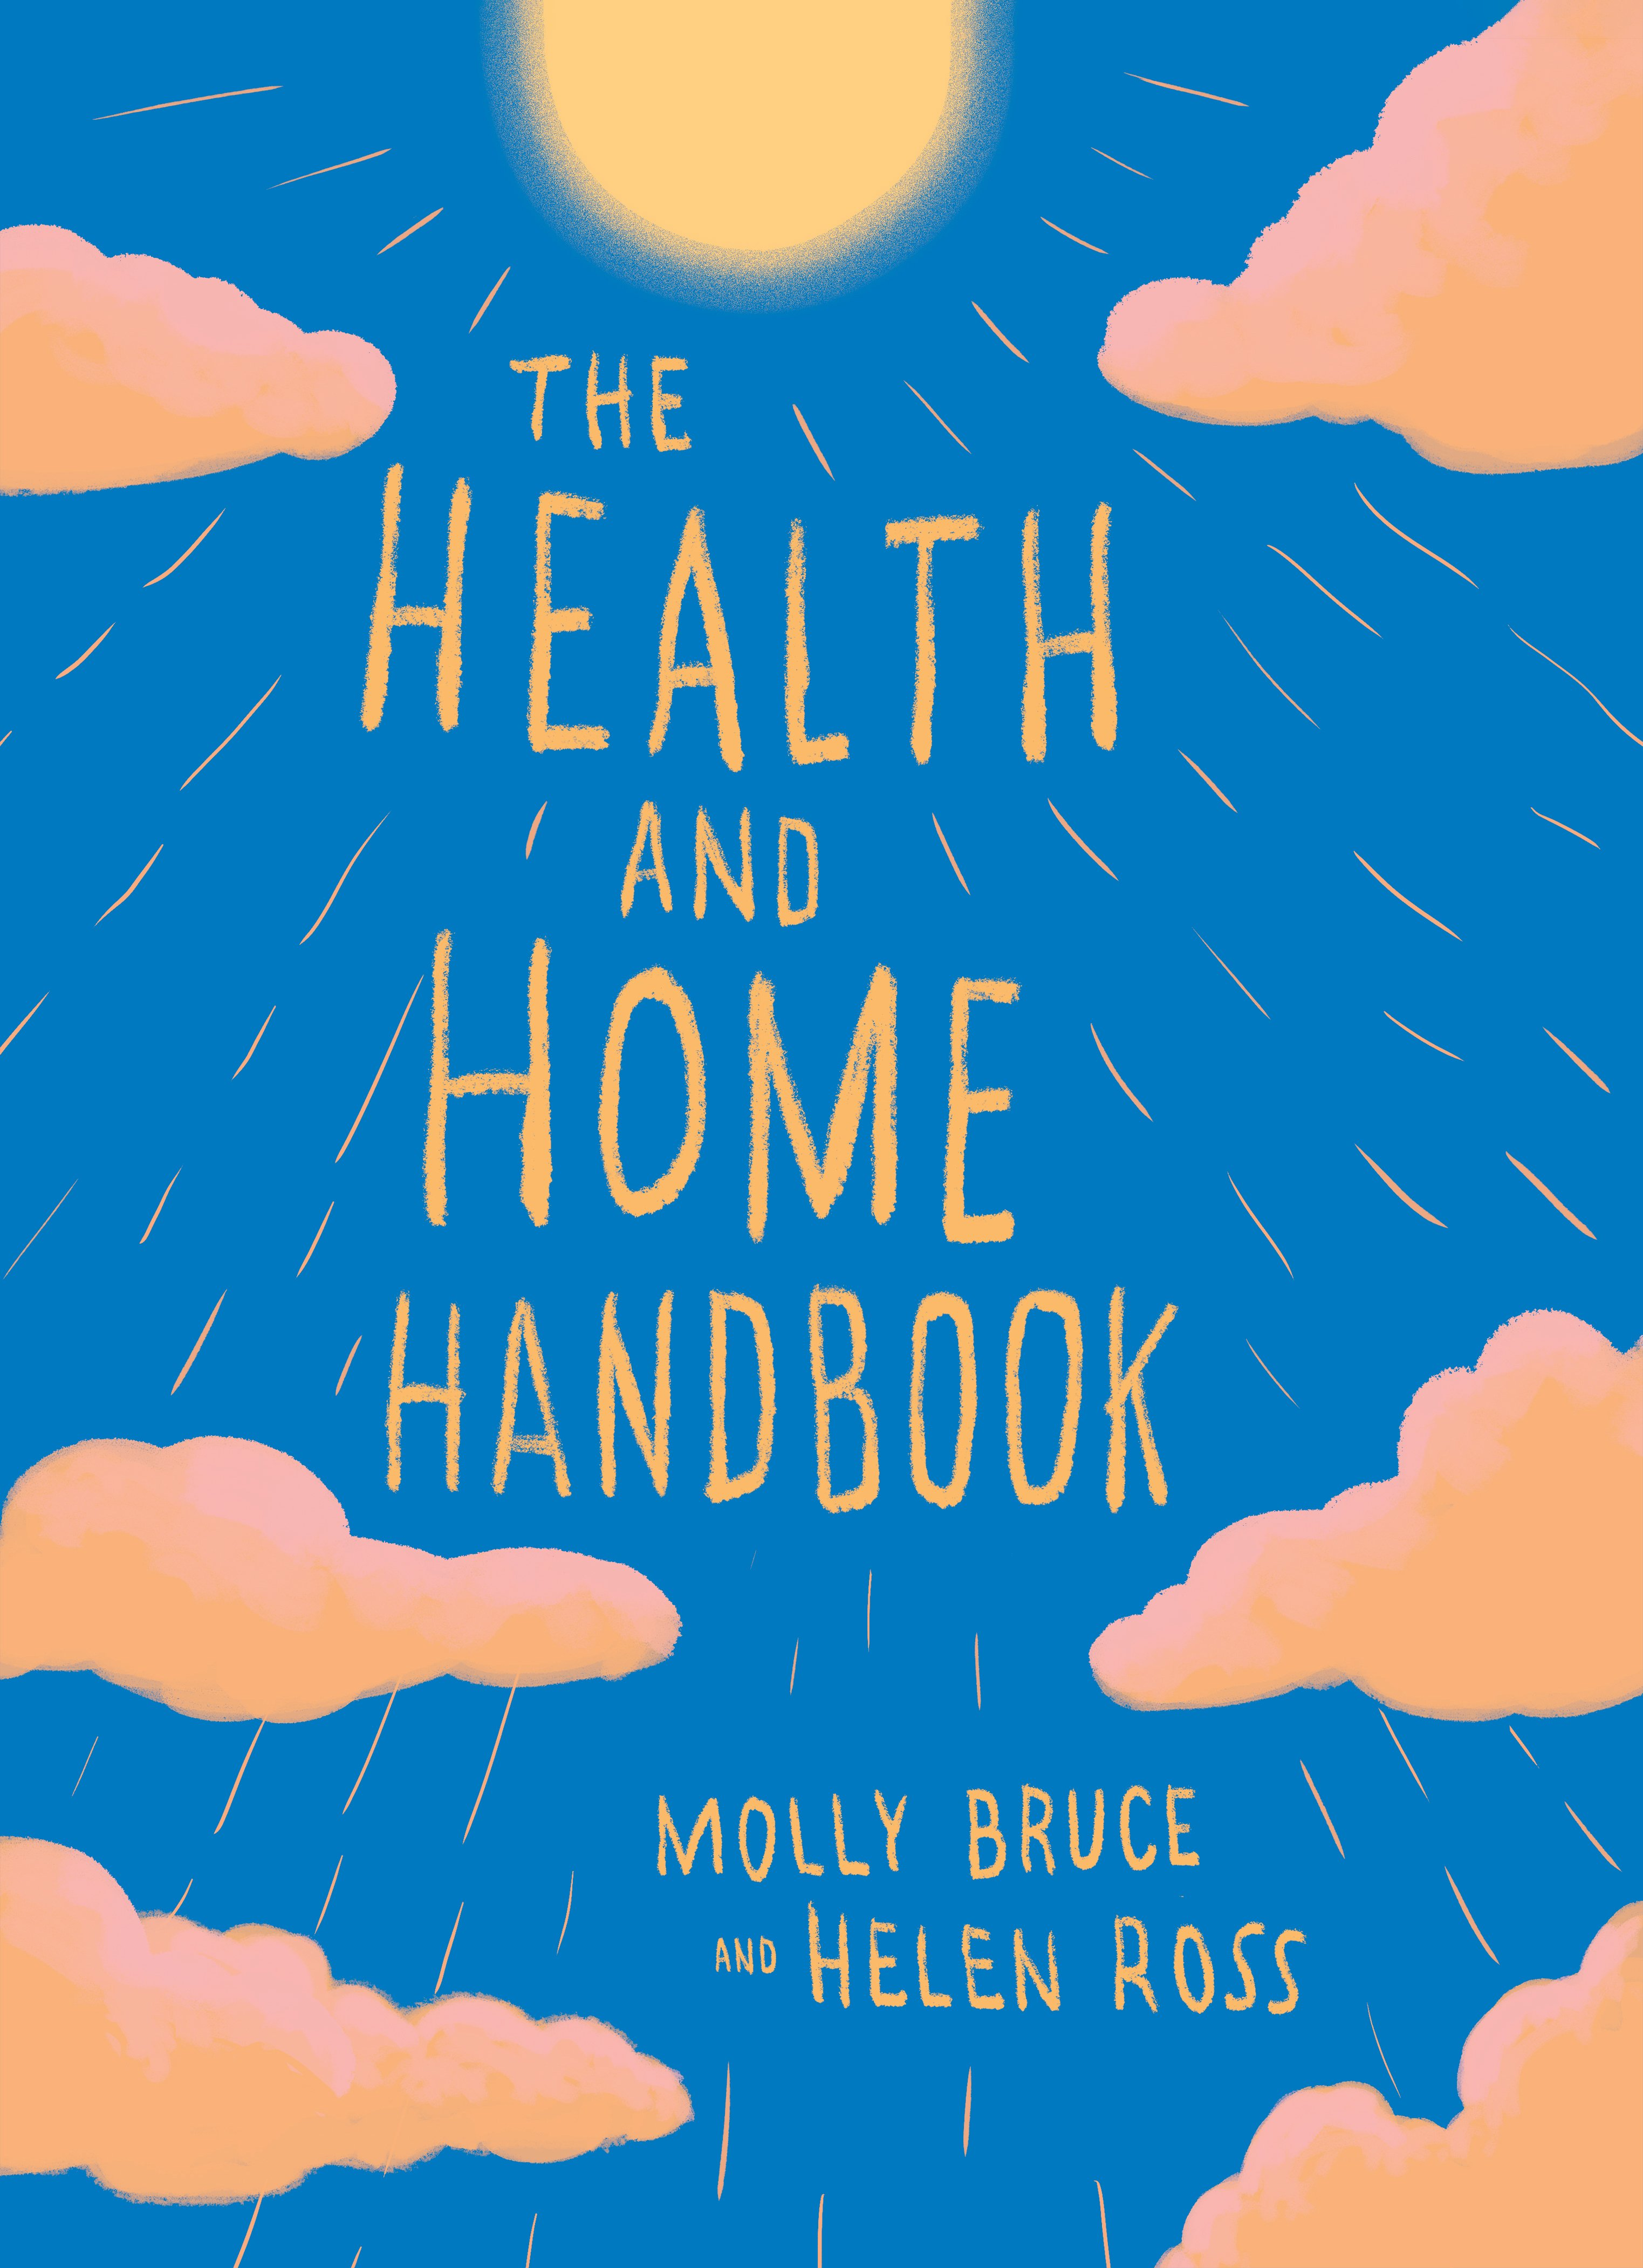 The Health and Home Handbook